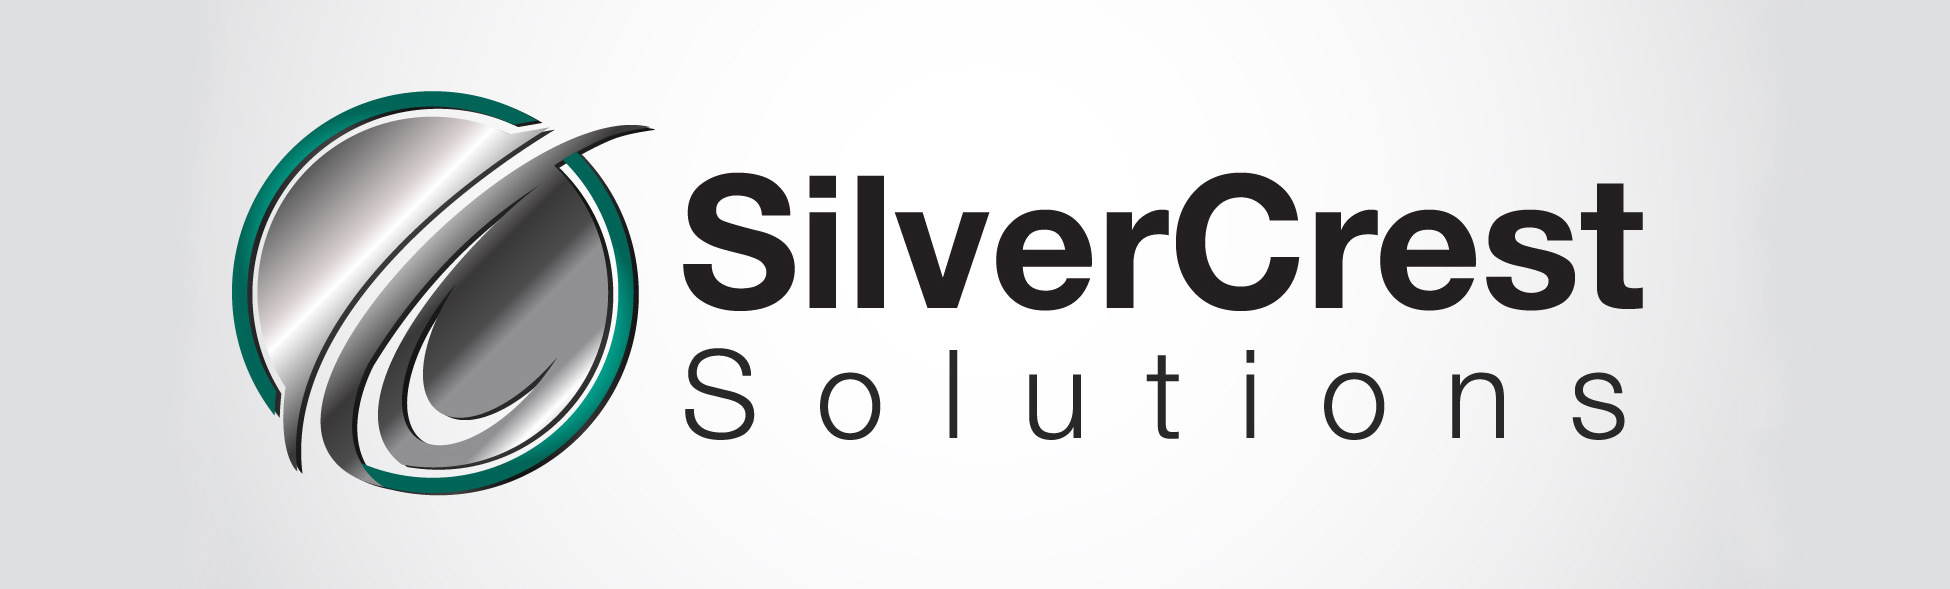 Silver Crest Solutions